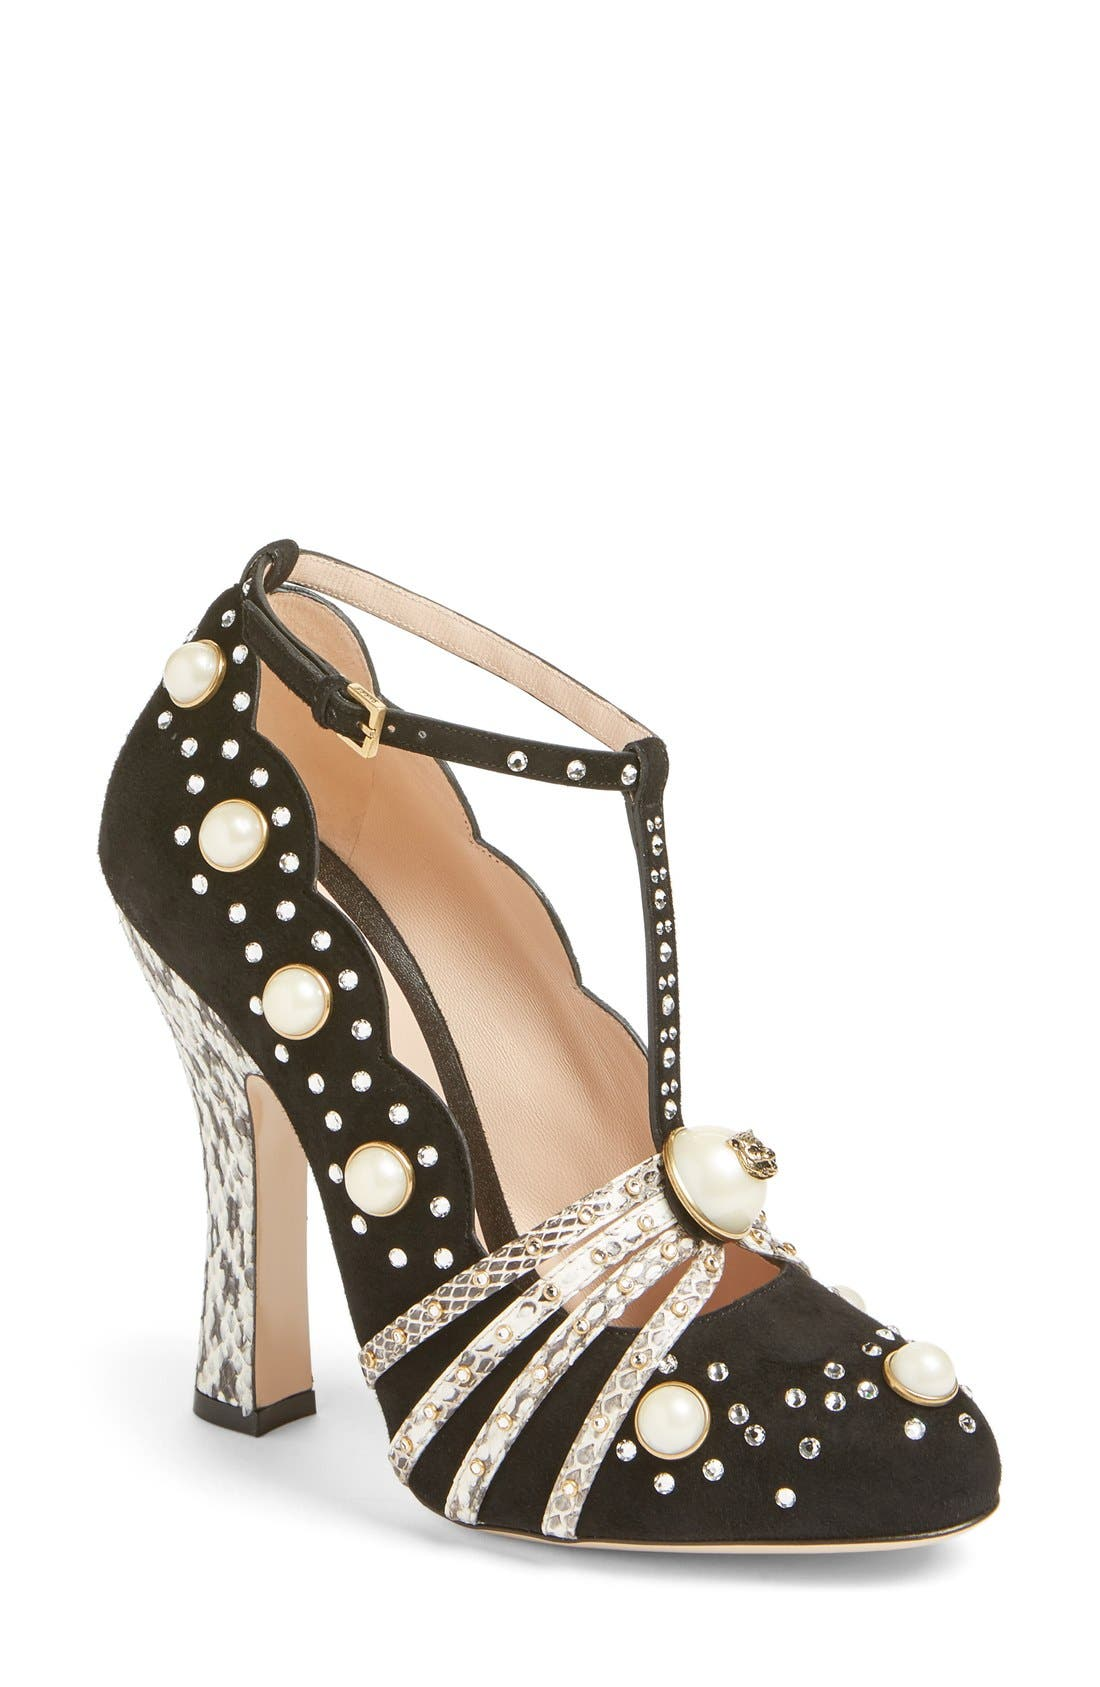 Ofelia Pearly Crystal Embellished Pump,                         Main,                         color, Black